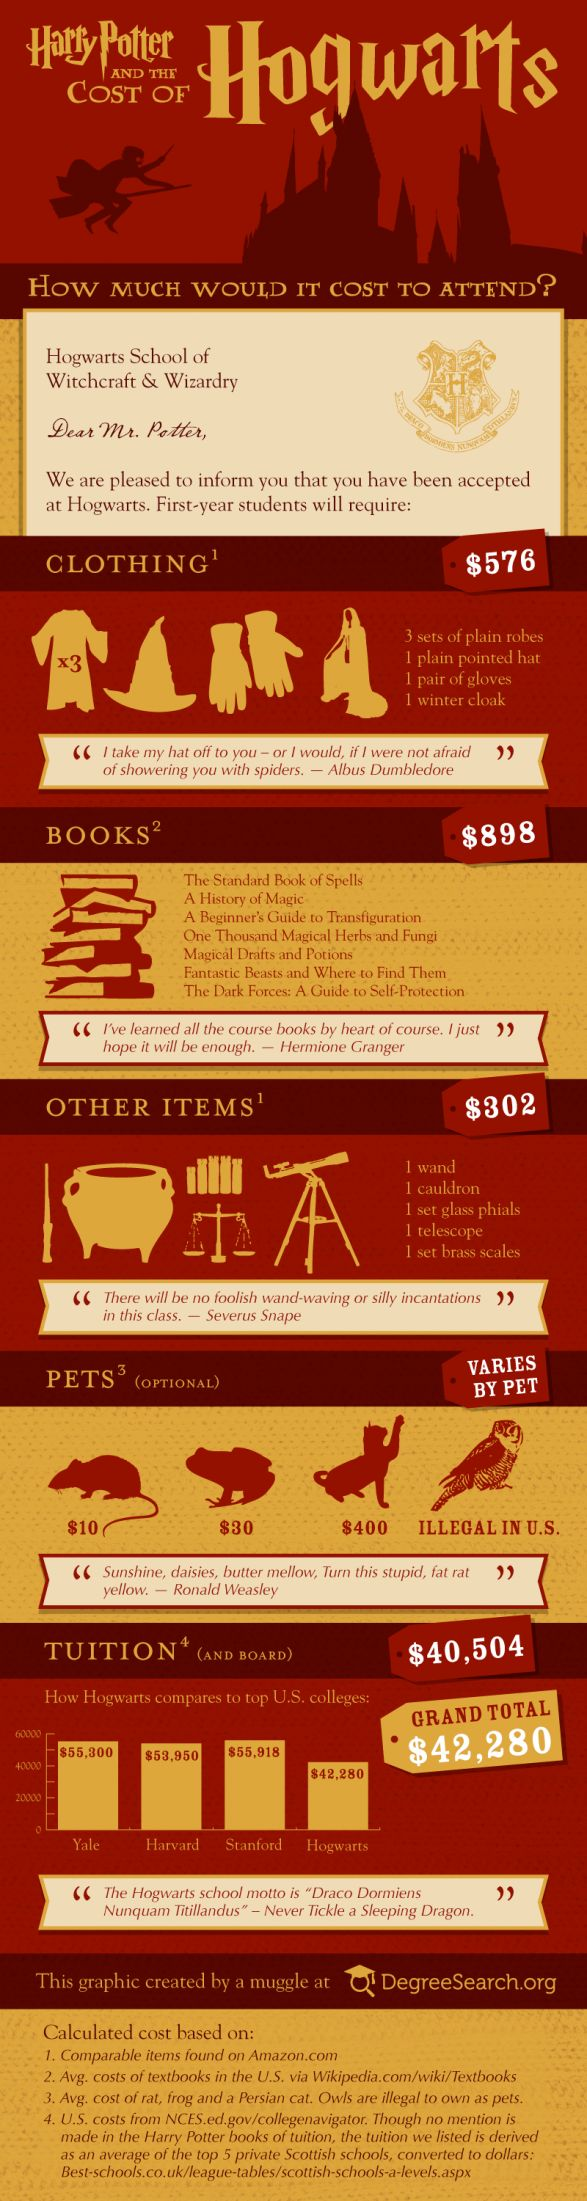 And they didn't have financial aid!: Hogwarts Cost, Mischief Managed, Harrypotter, Attend Hogwarts, Hogwarts Tuition, Harry Potter, Potterhead, Infographic